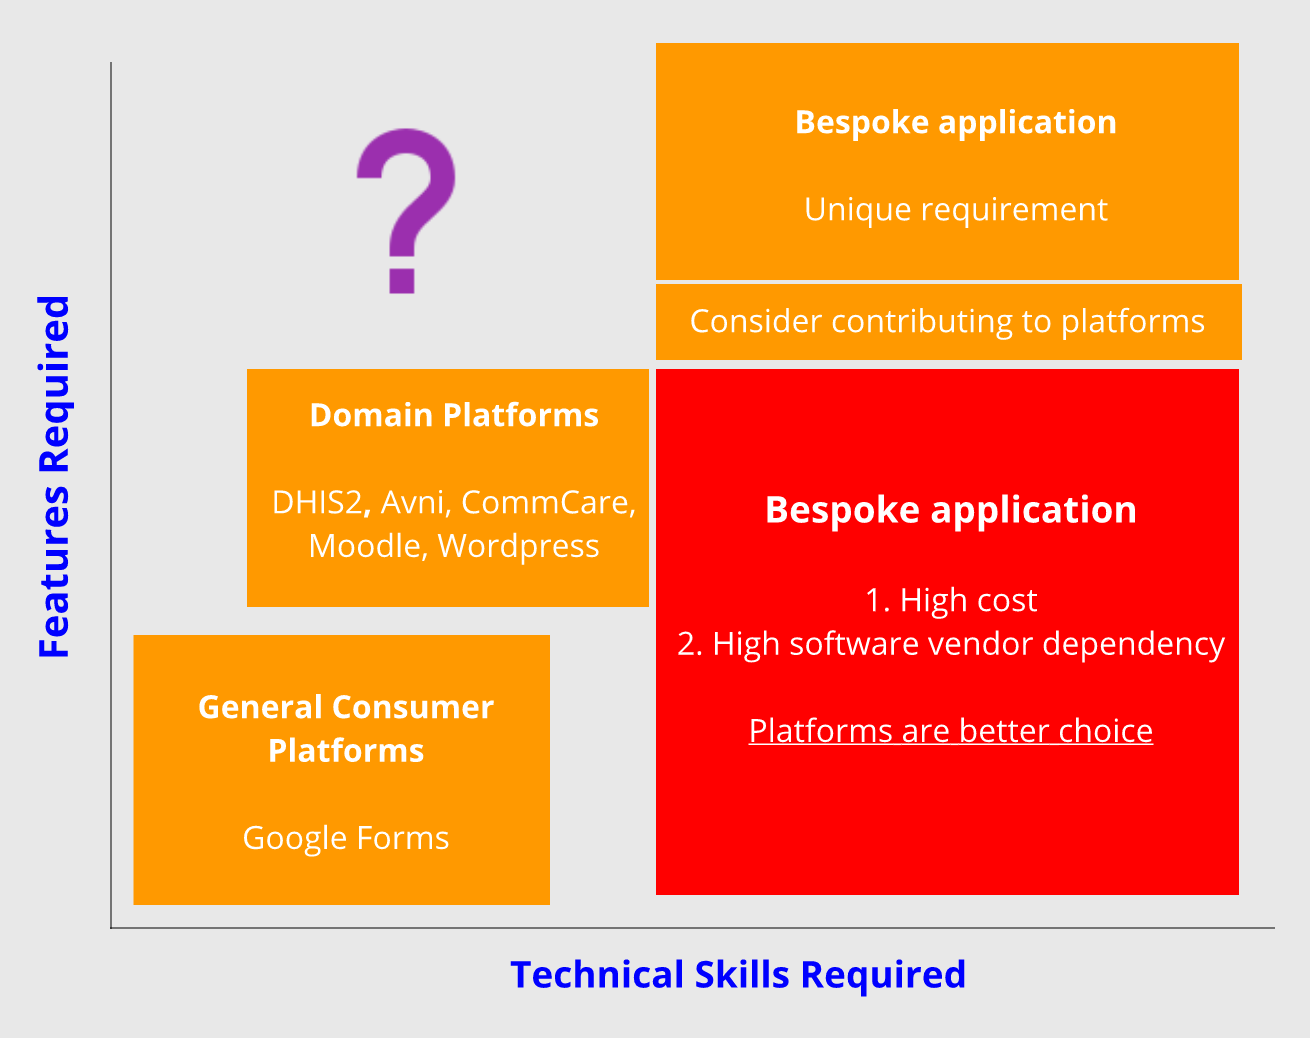 Difference between software platform and bespoke solution. How to make the choice?